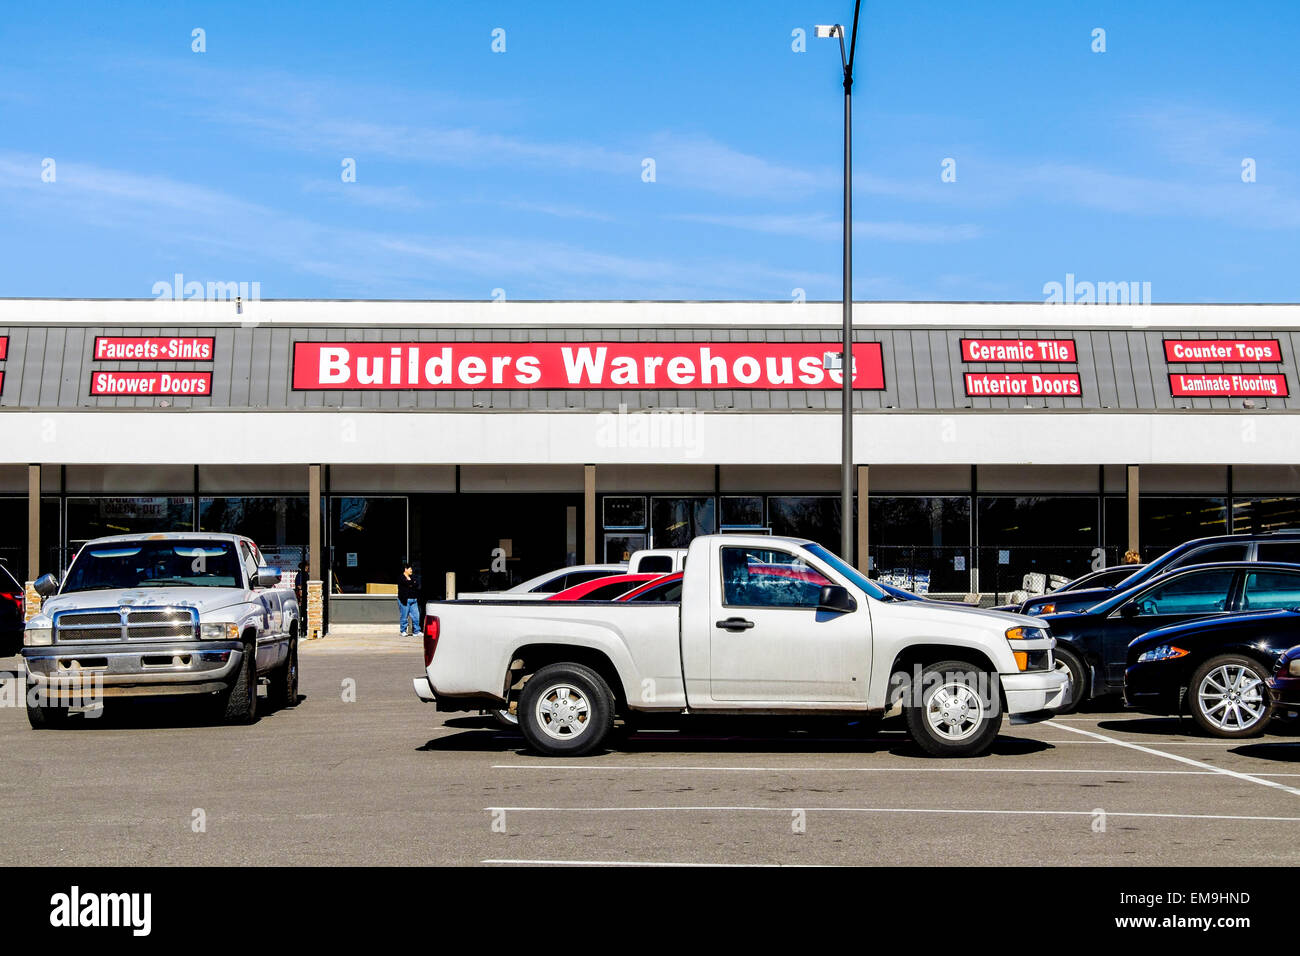 Stock Photo The Storefront Of Builders Warehouse A Business Selling Building Products At Discounted Prices In Oklahoma City Oklahoma Usa